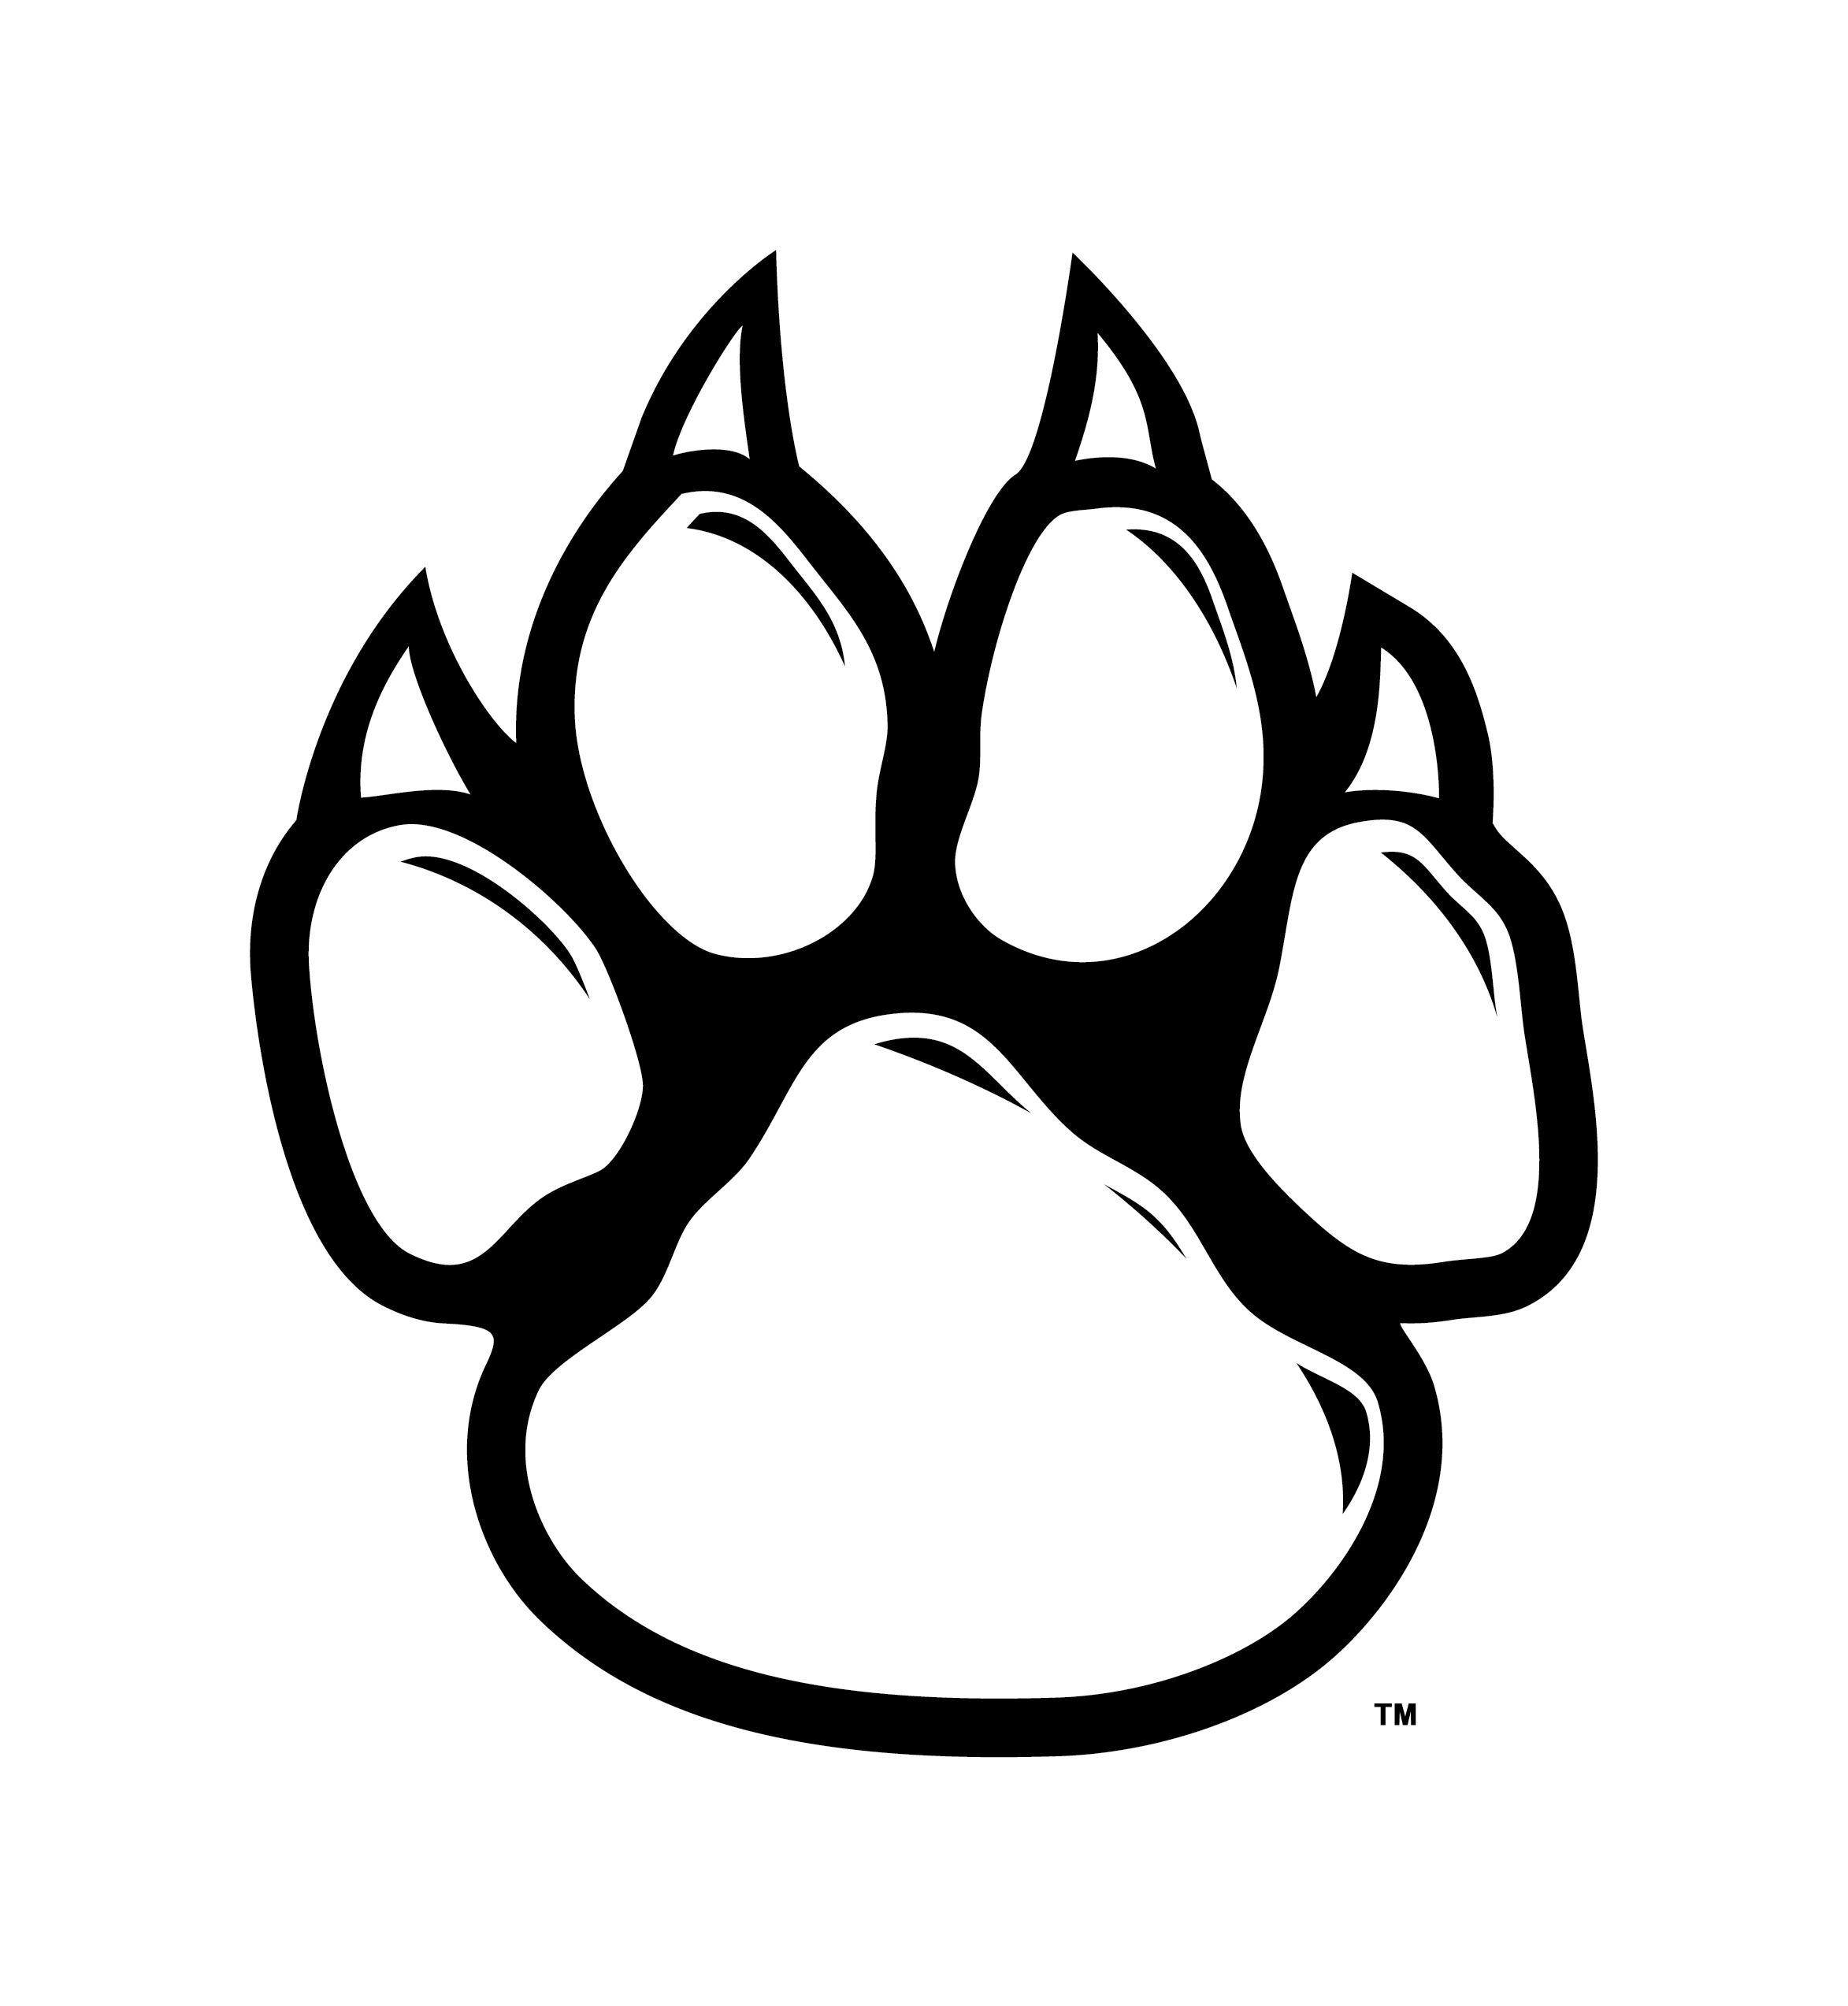 Distressed football outline clipart graphic freeuse stock wolf paw print clip art - Google Search | shapes - line | Pinterest ... graphic freeuse stock